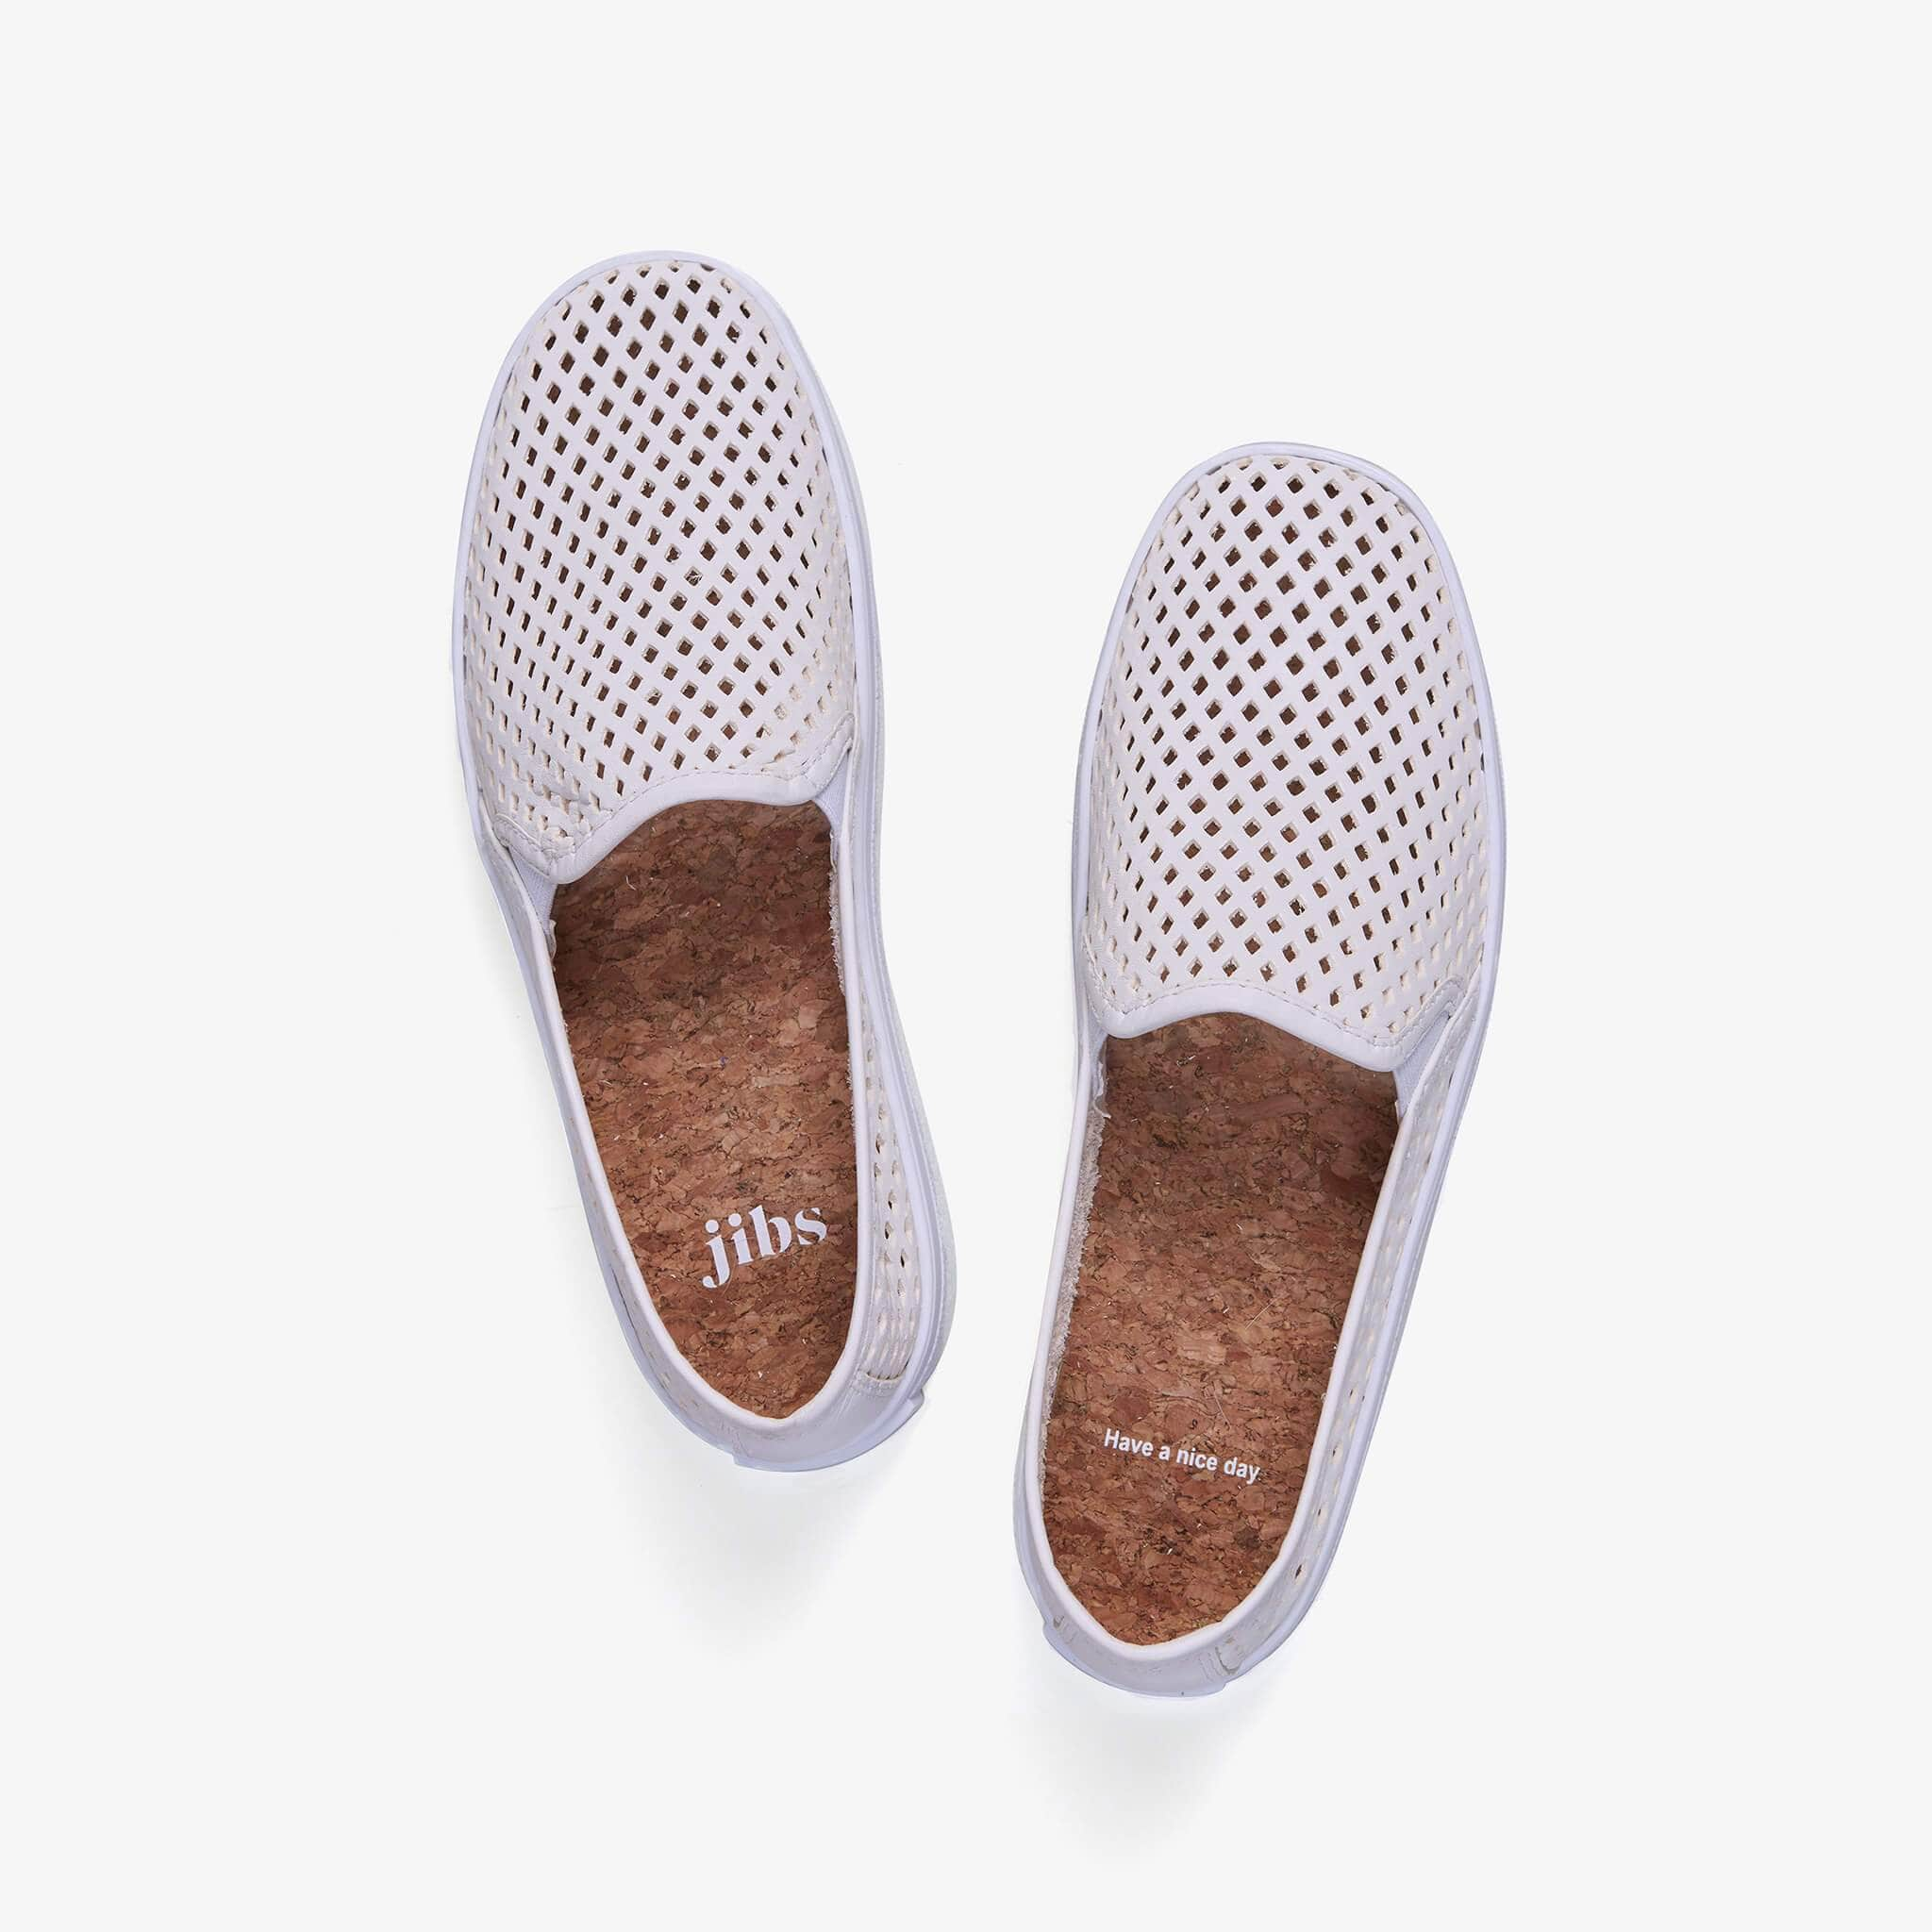 JIbs Classic Soft White Slip On Sneaker-Shoe Top Have A Nice Day